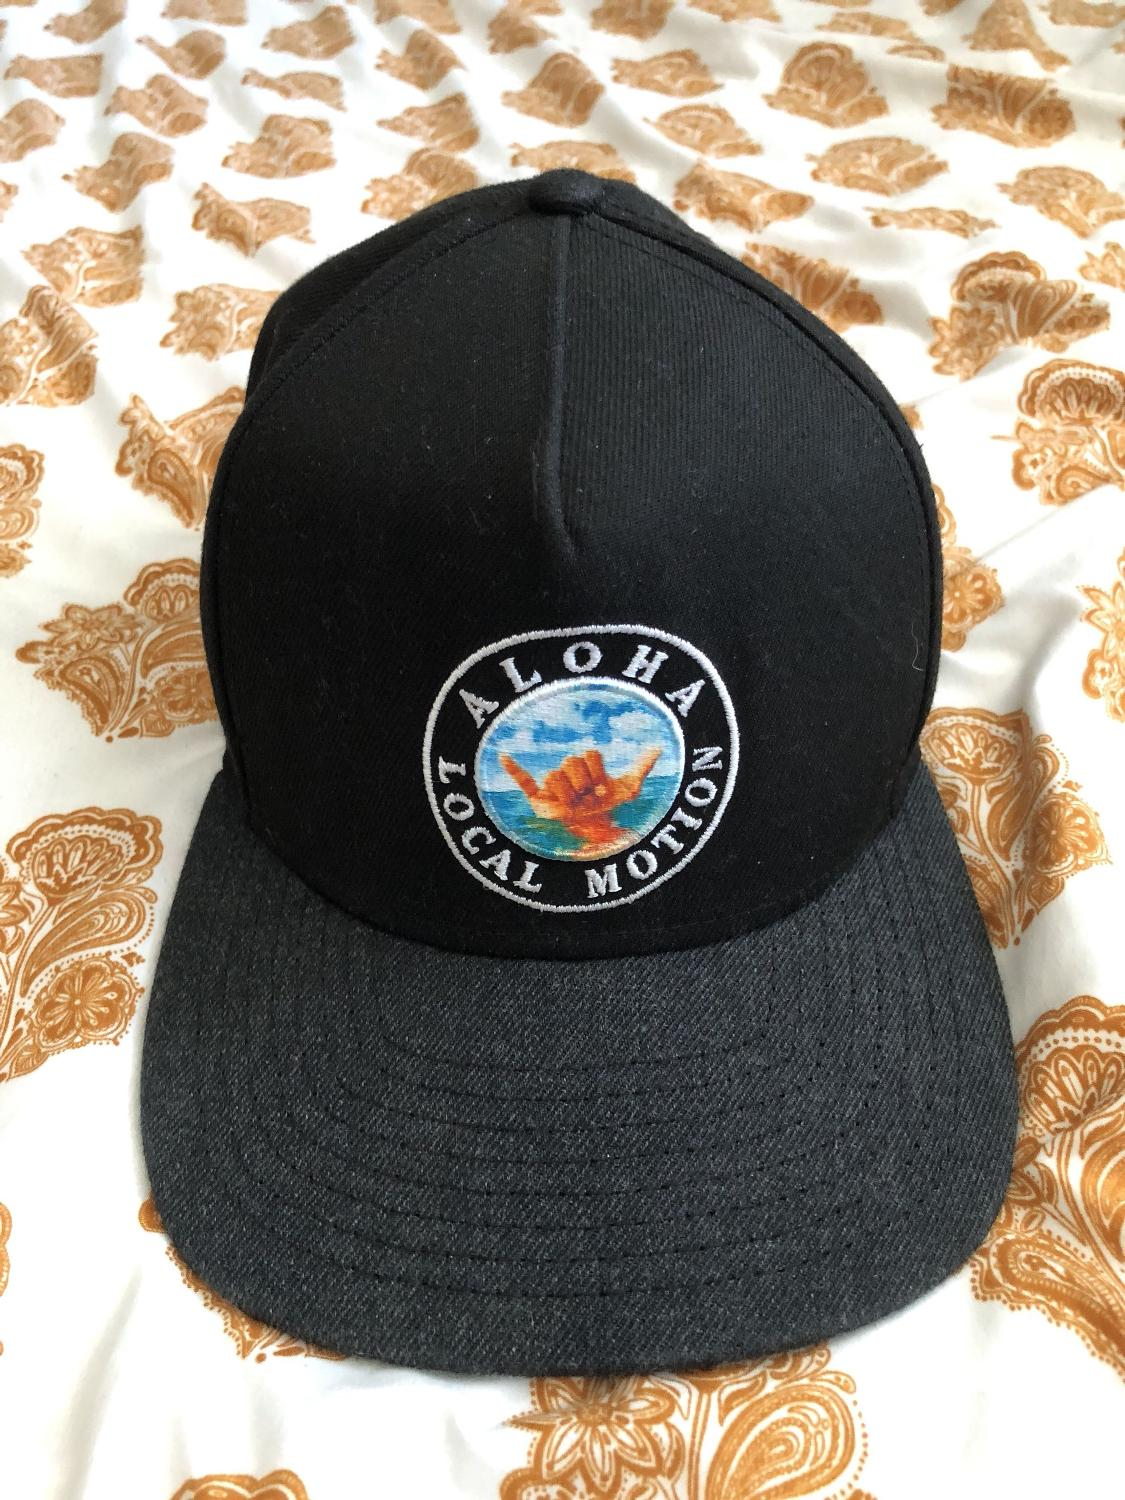 Aloha Fitted Hats For Sale